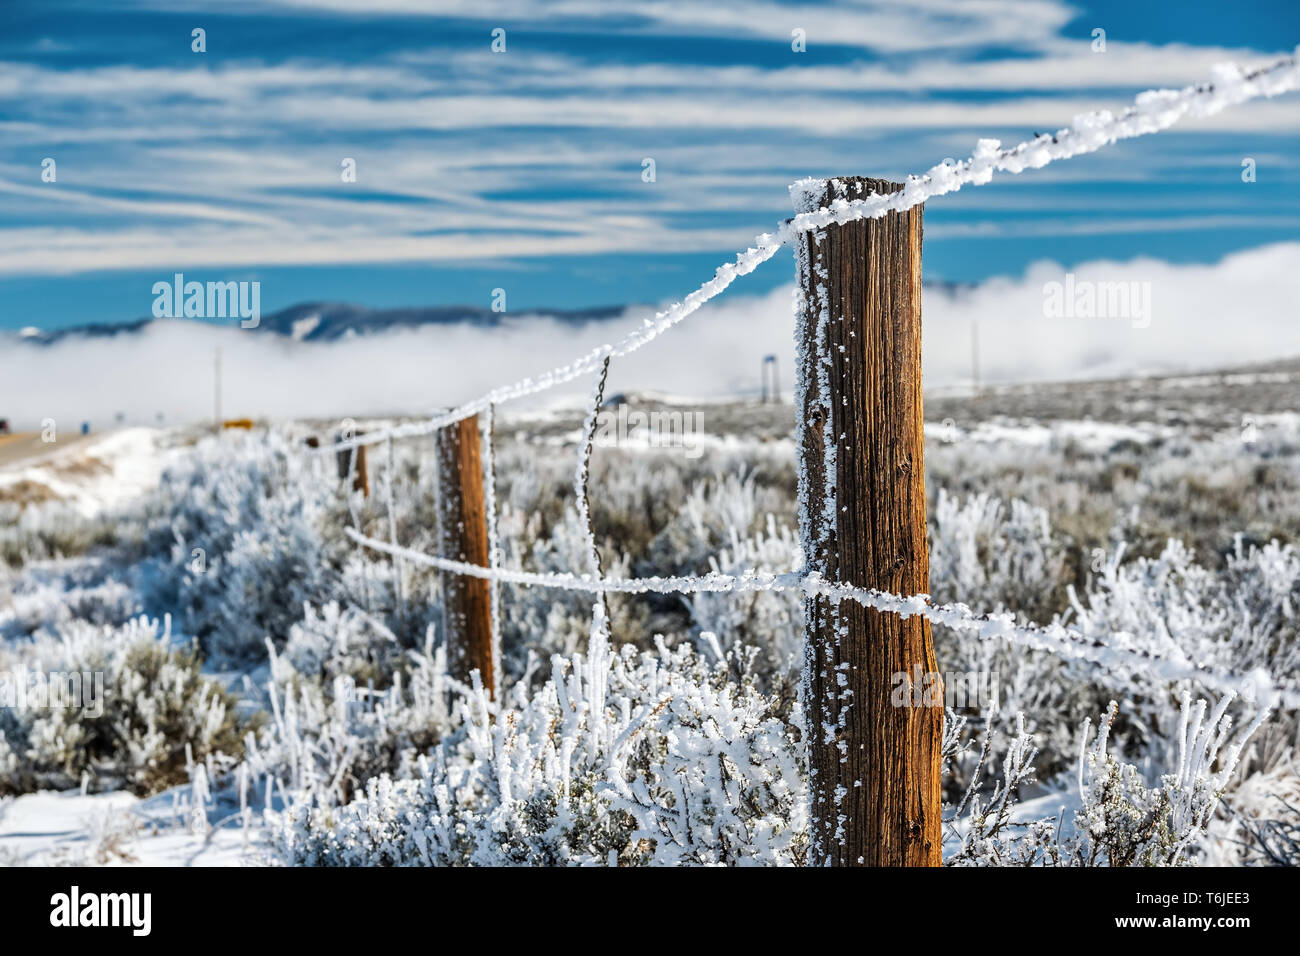 Landscape with hoarfrost on the fence Stock Photo